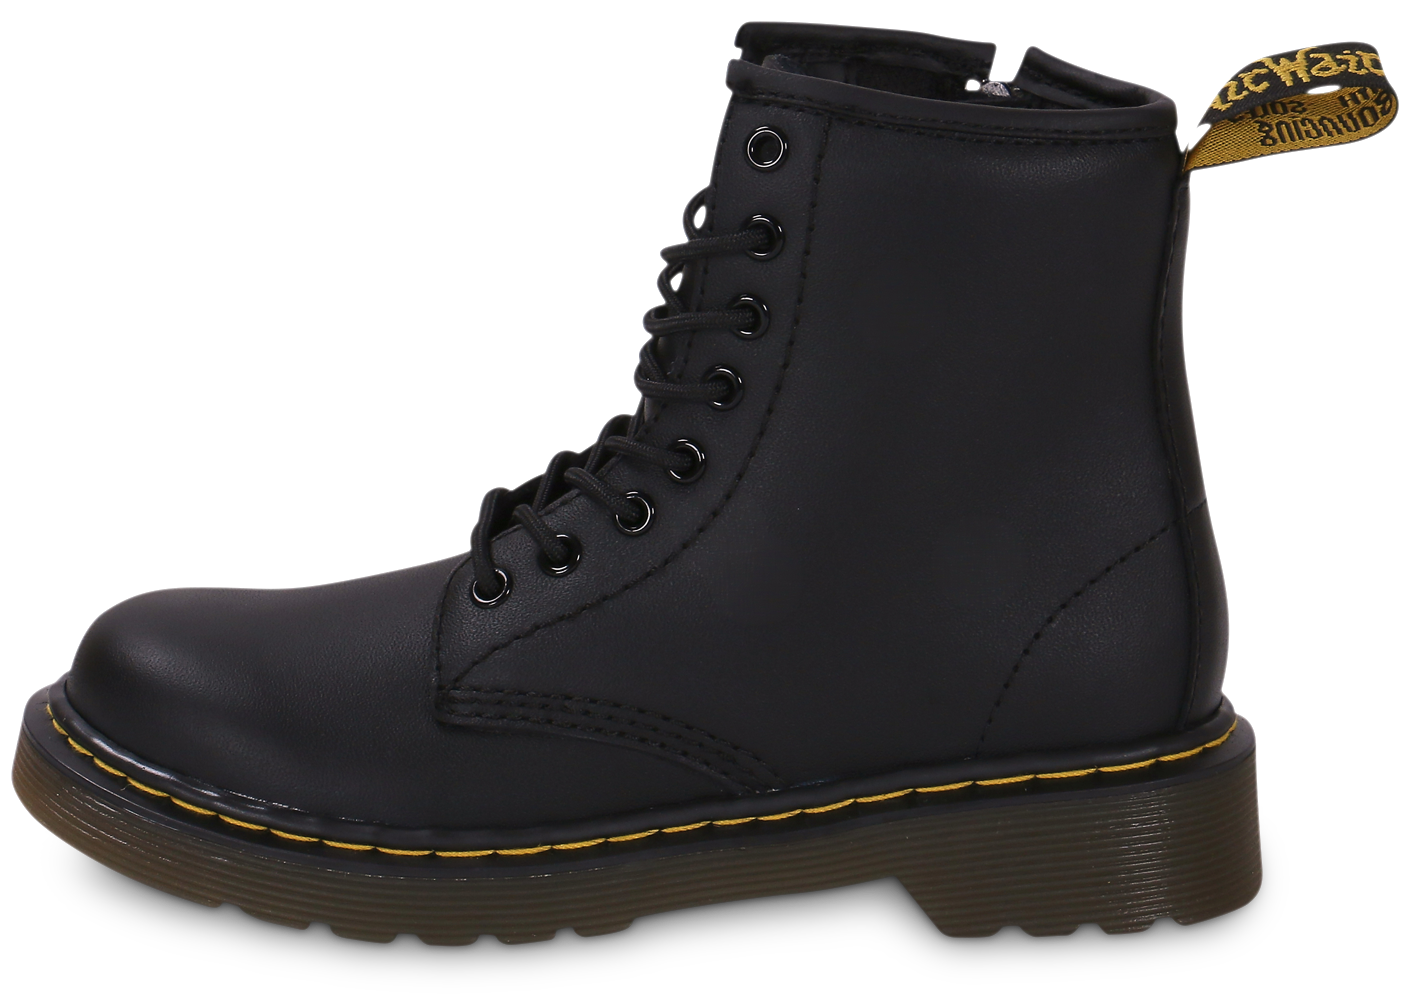 Dr martens coupon code